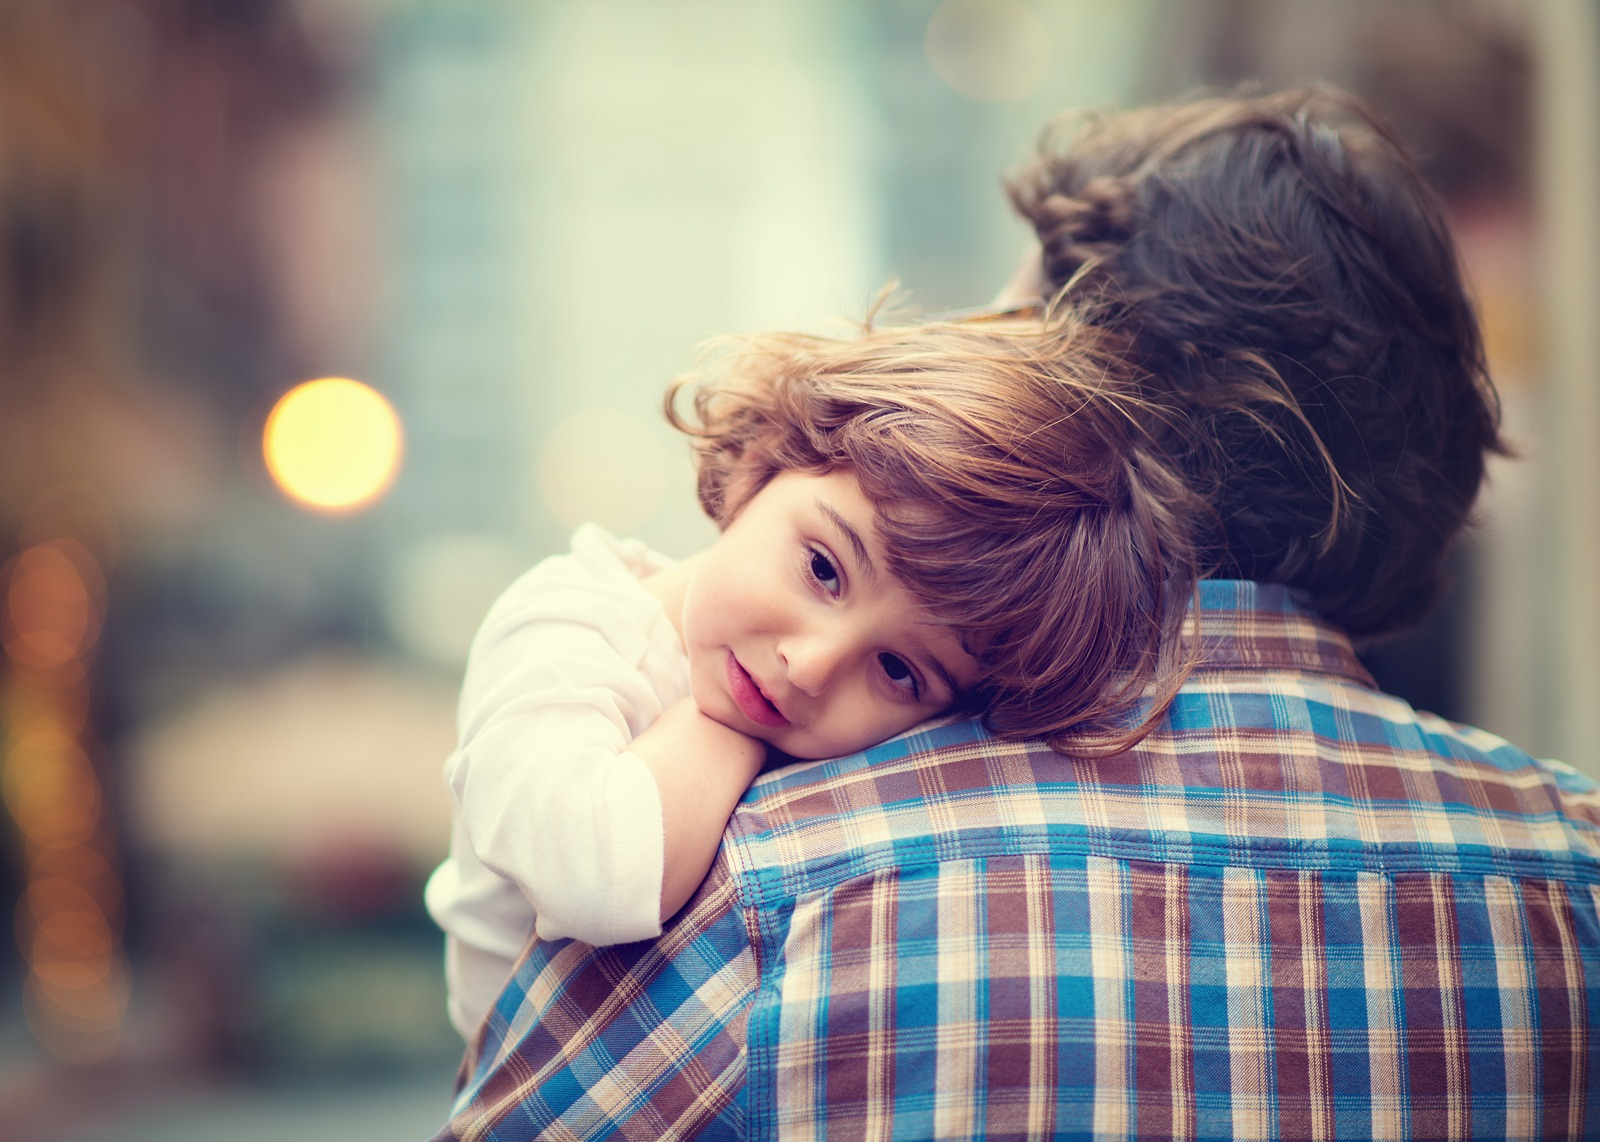 Young child resting head on man's shoulder